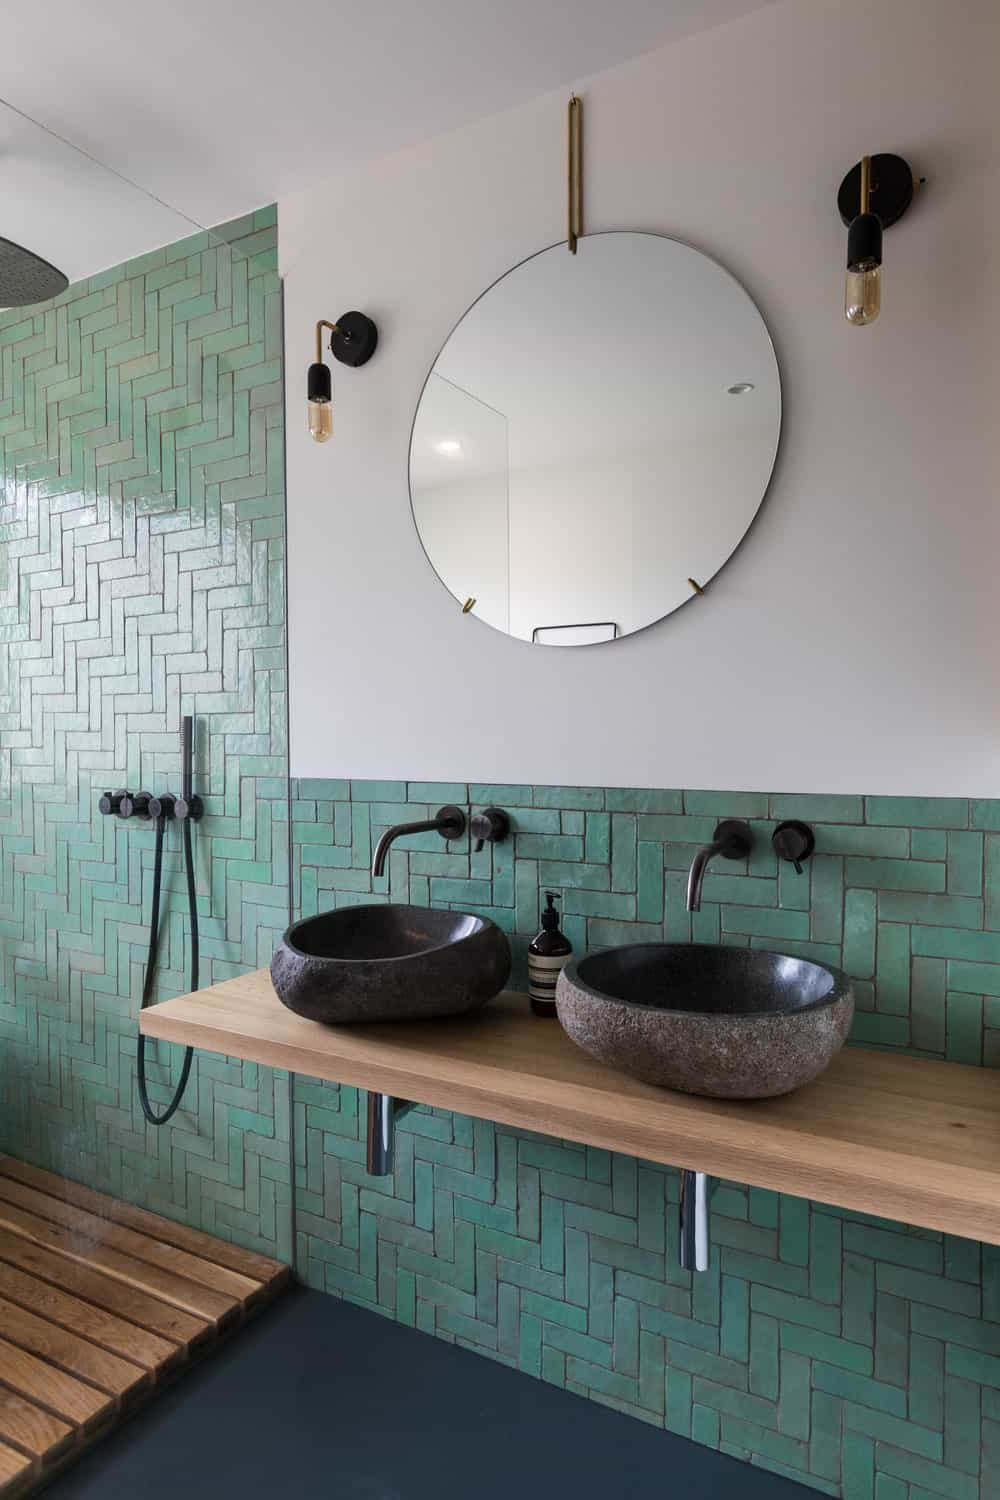 Wash area in the Frans Halsstraat designed by Cantero Architecture.